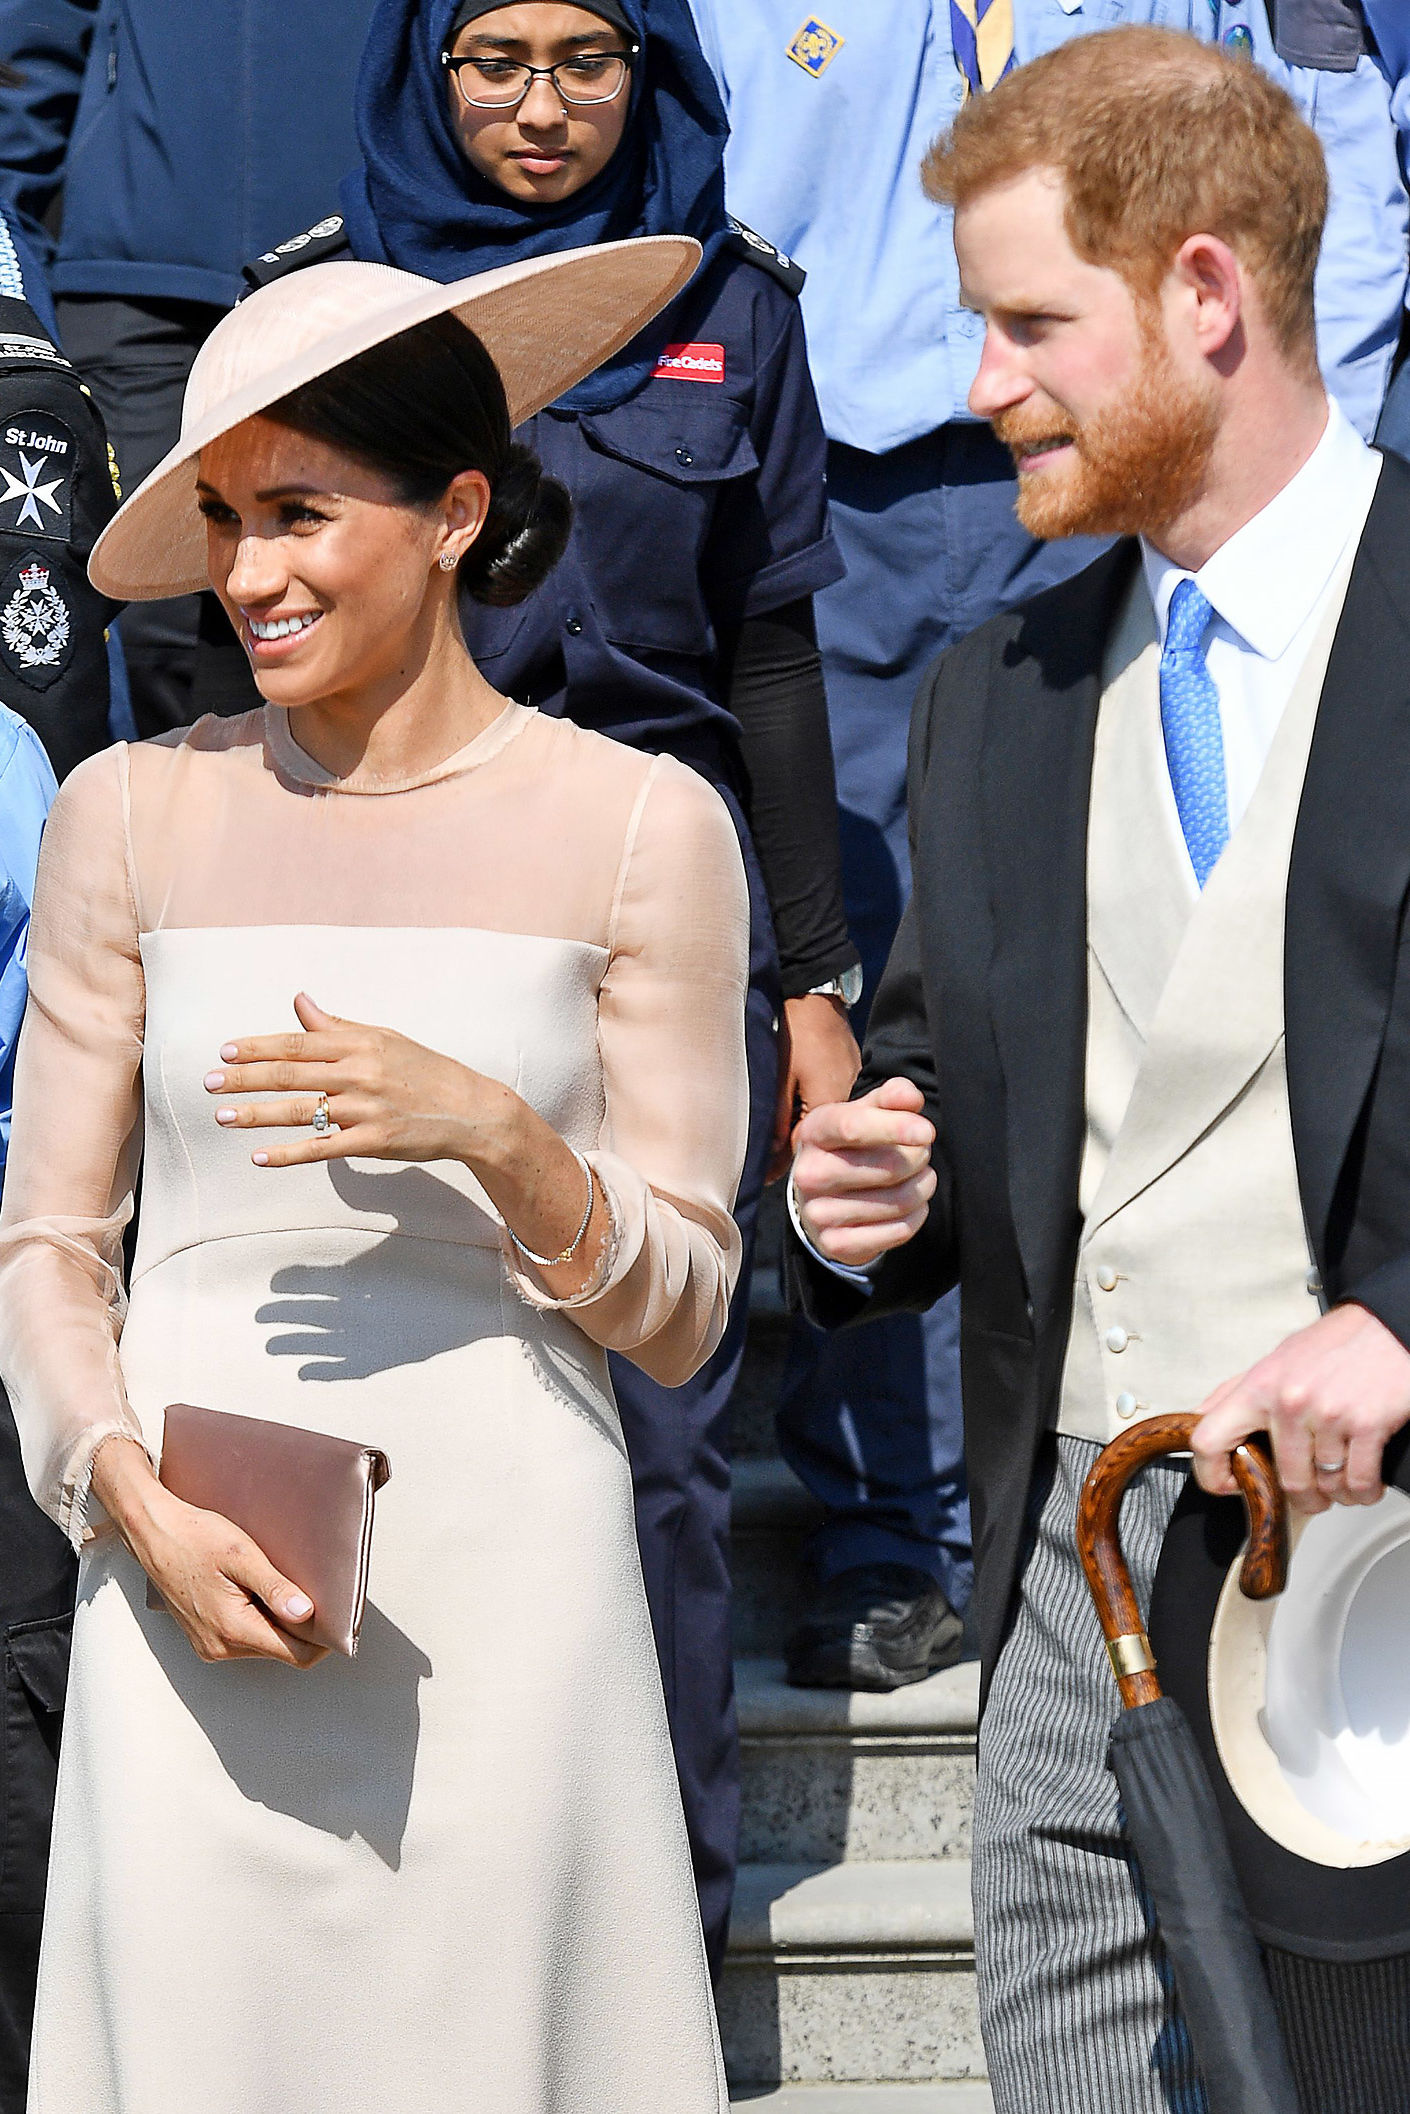 Prince Harry and Meghan Markle's Future Daughters Will Not Inherit Titles